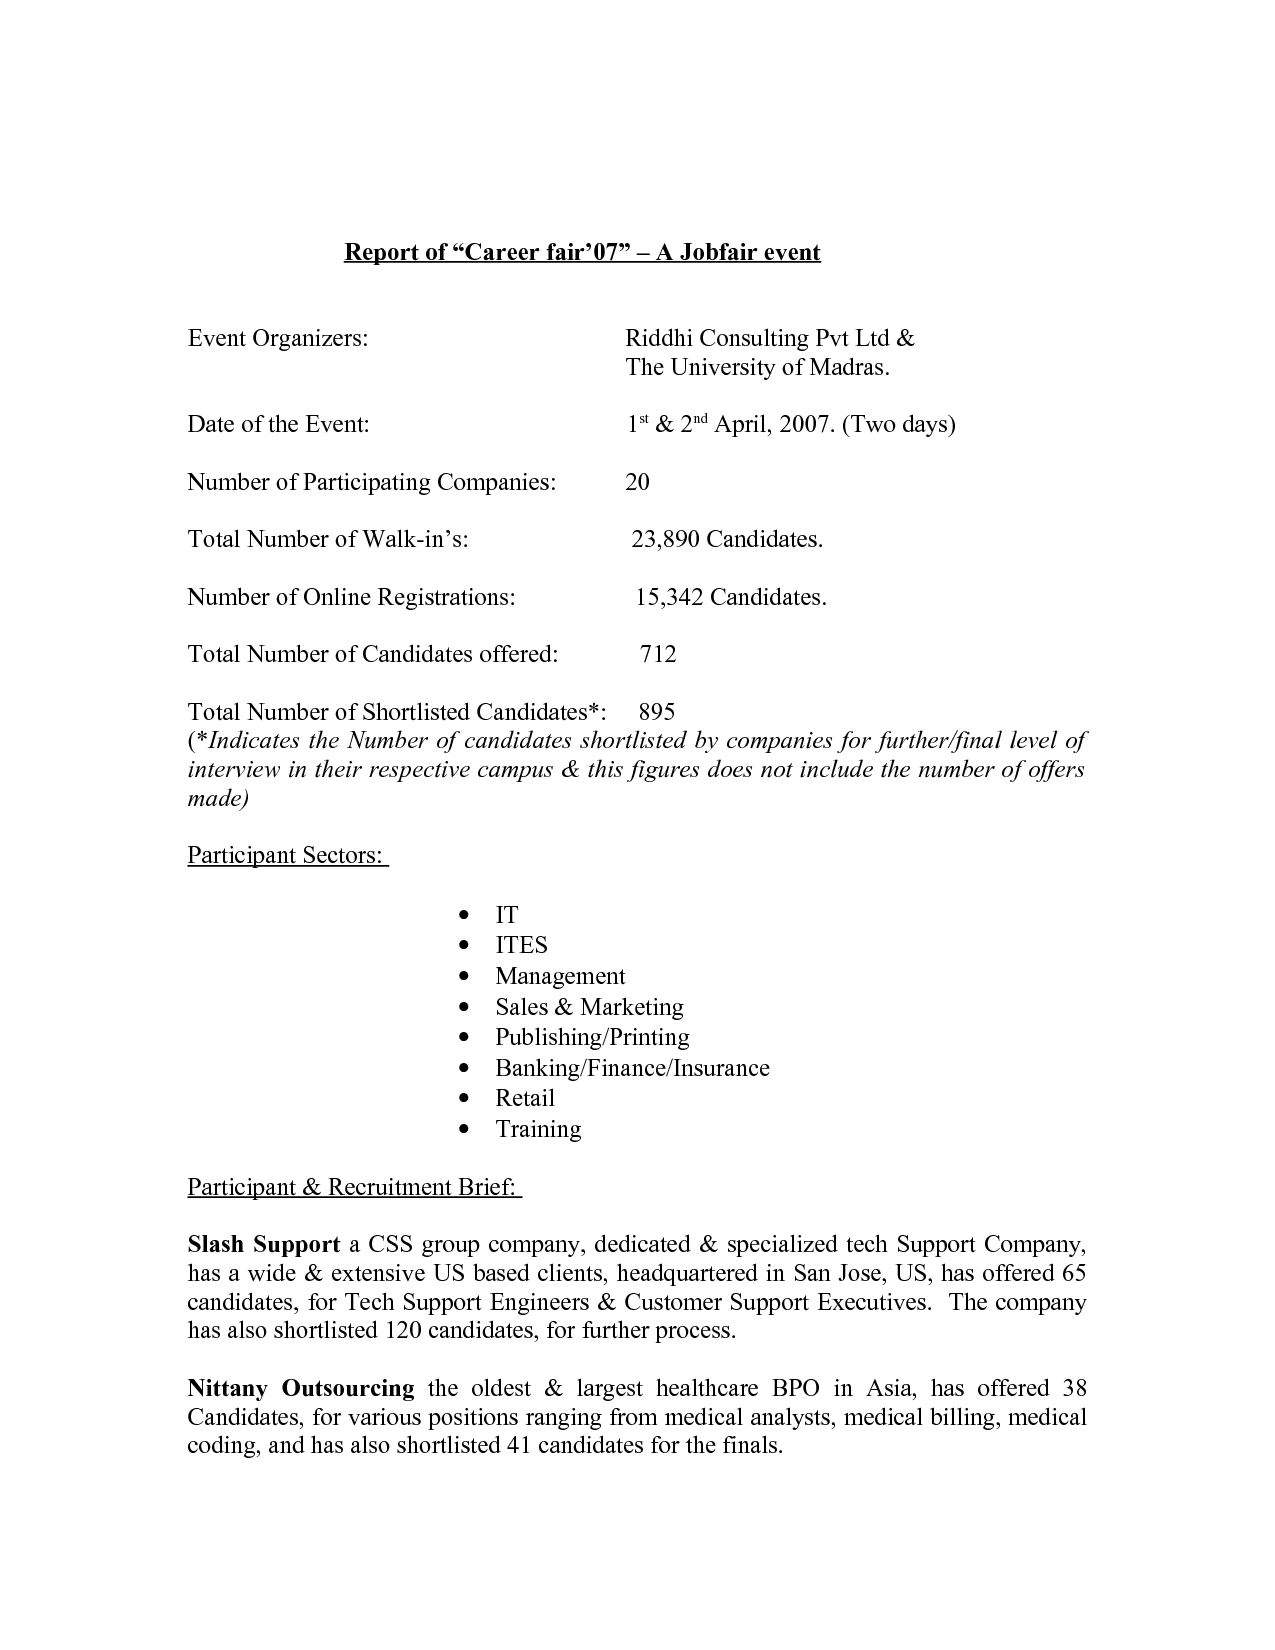 resume format for freshers free download resume format for freshers free download  resume format